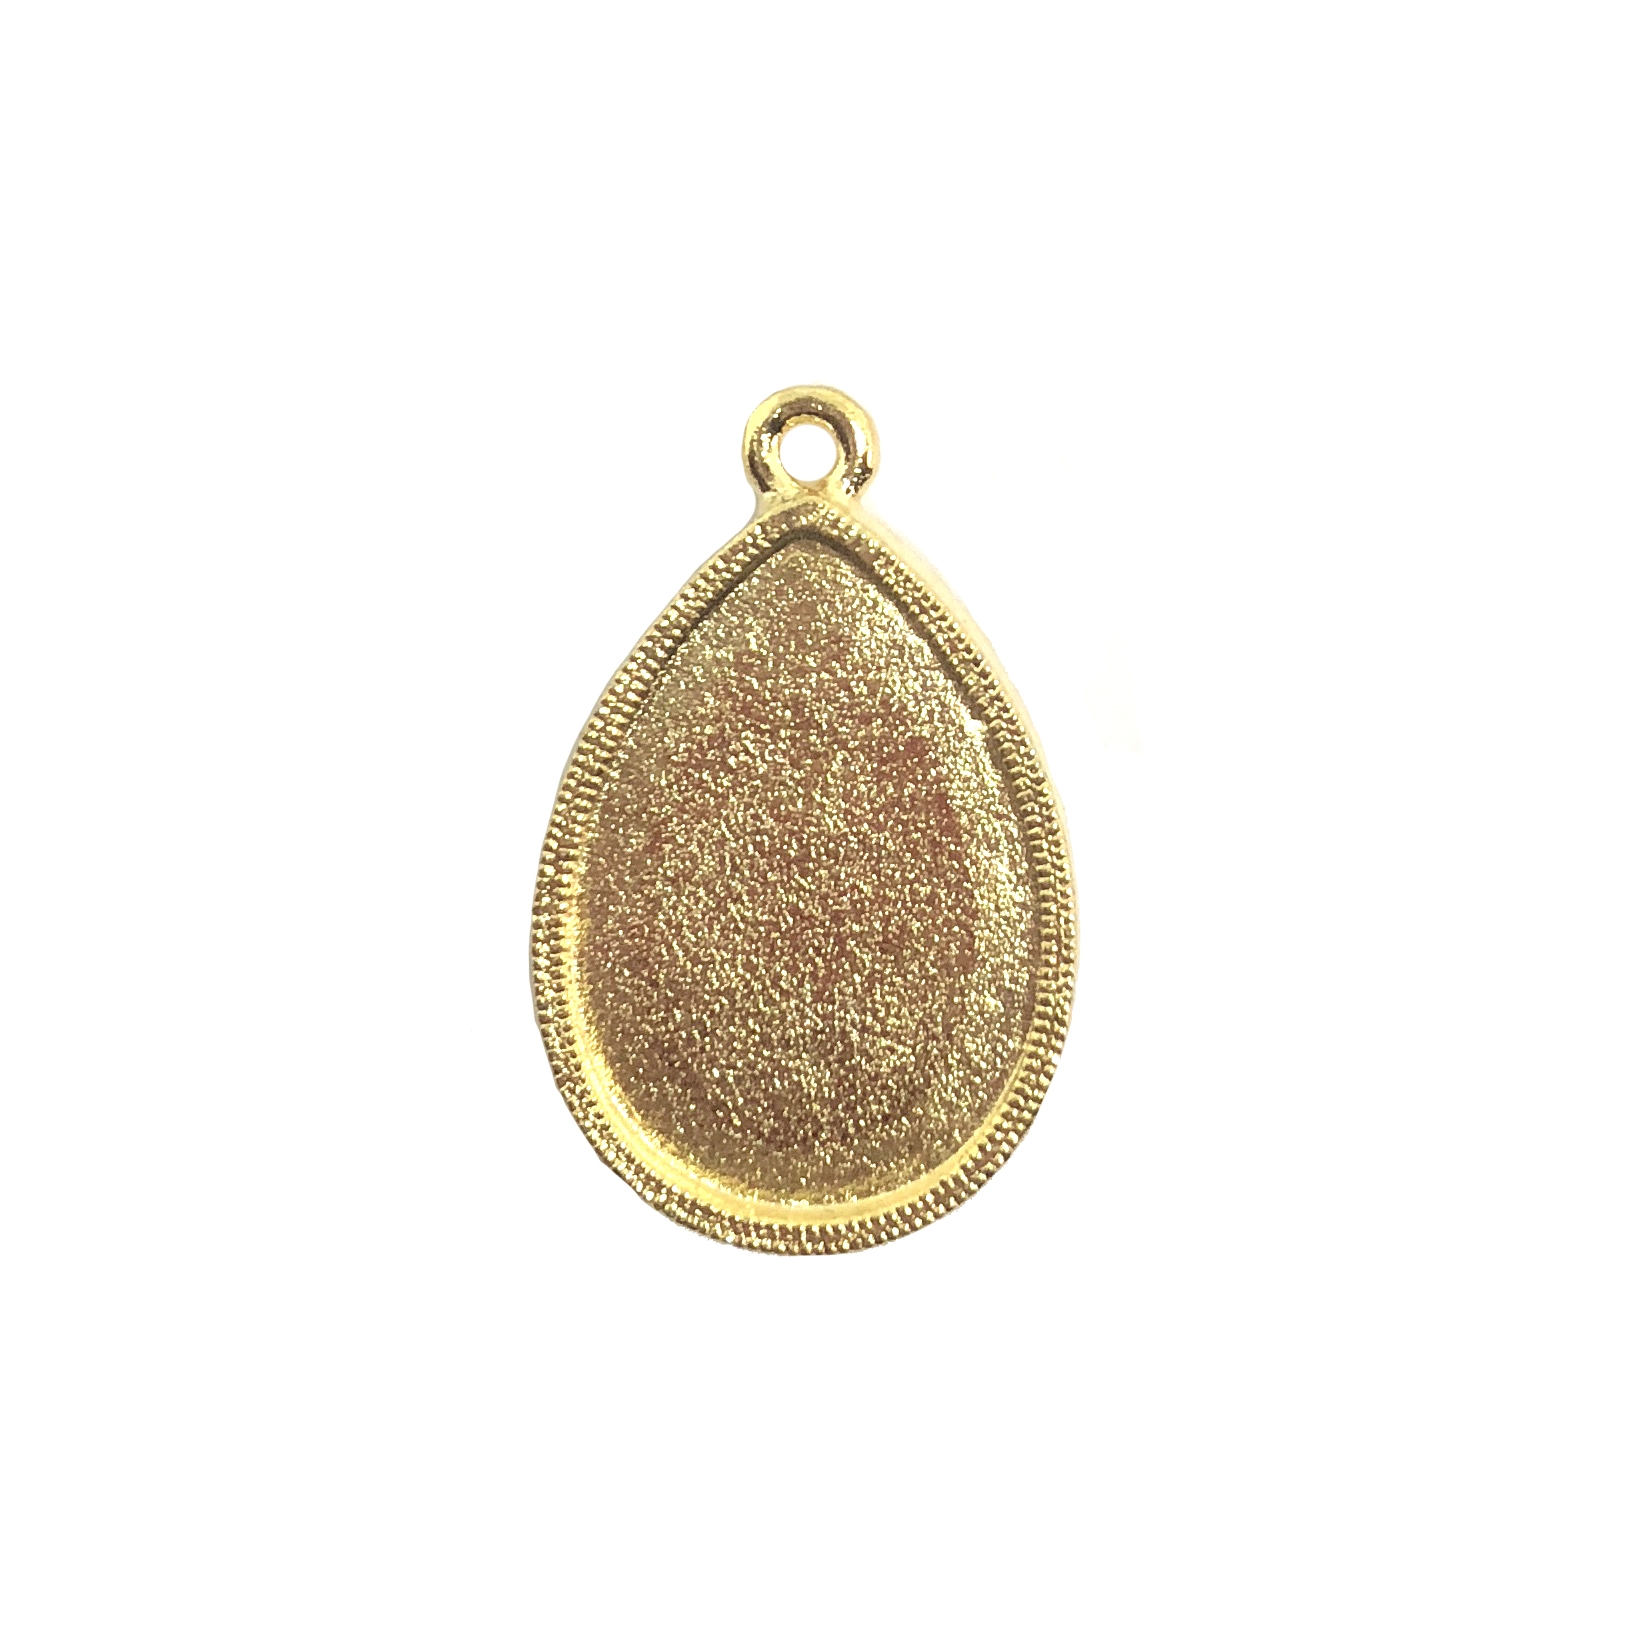 teardrop bezel, pendant, 22K gold finish pewter, vintage pewter castings, B'sue by 1928, mount, bezel, teardrop, pendant, lead free pewter, US made, designer jewelry, vintage jewelry supplies, 1928 Jewelry, B'sue Boutiques, drop, gold, 08547